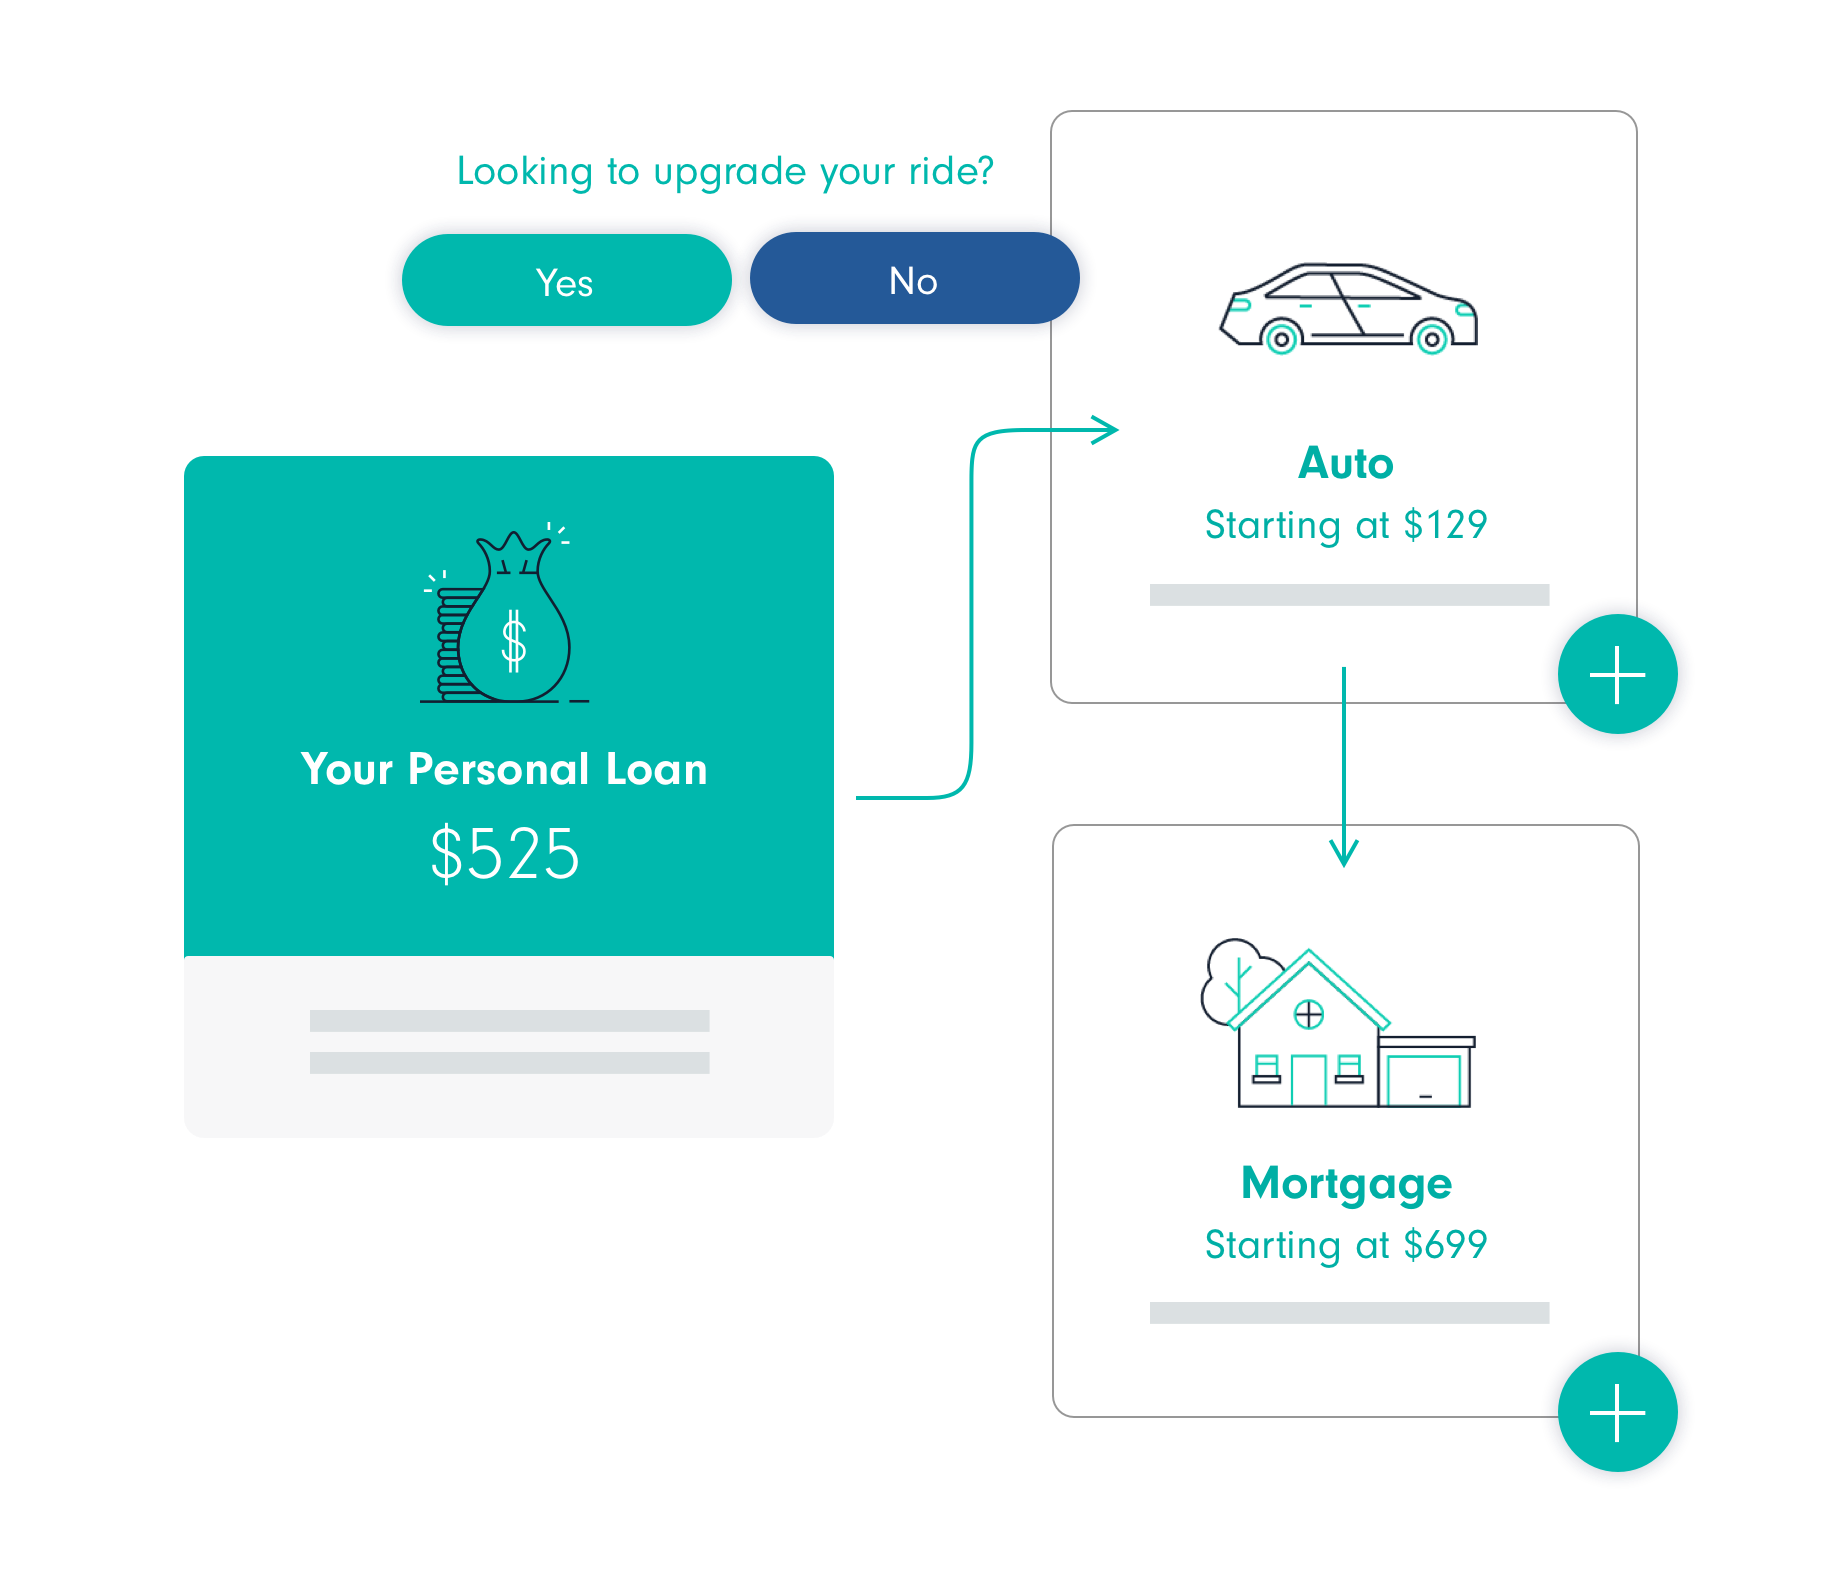 Diagram of personal loan, auto loan and mortgage loan.